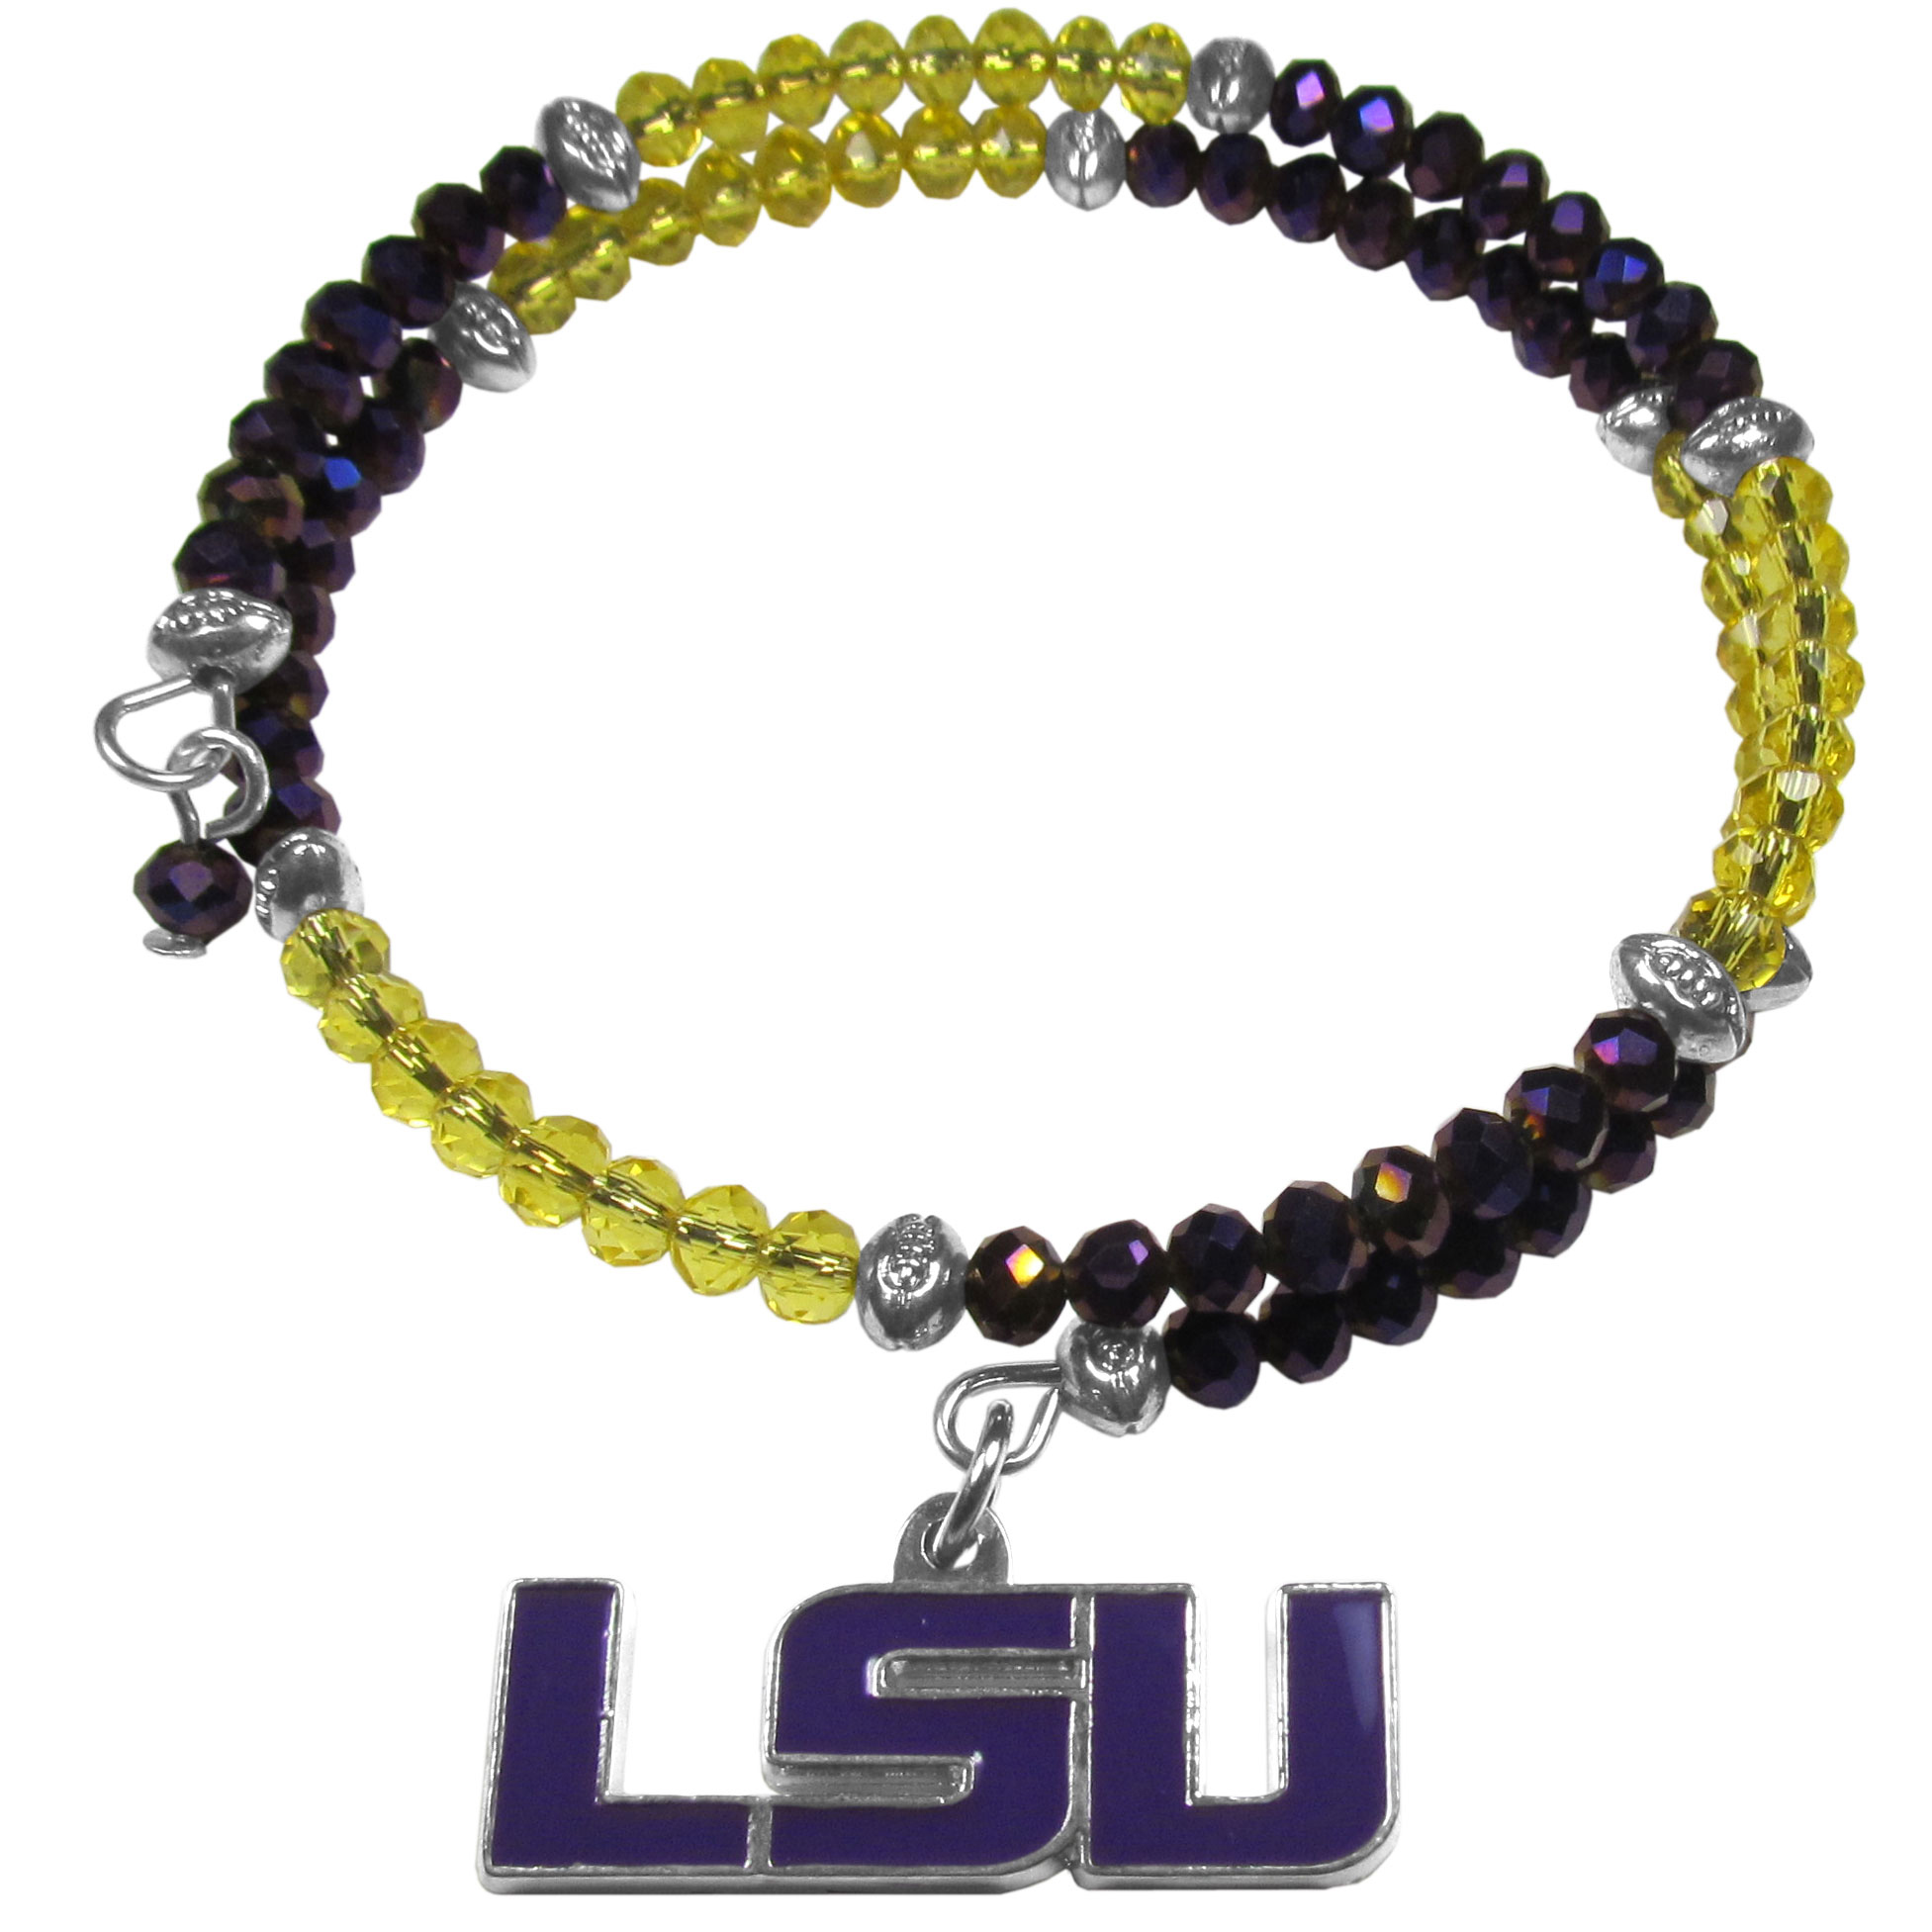 LSU Tigers Crystal Memory Wire Bracelet - Our LSU Tigers memory wire crystal bracelet is trendy way to show off your love of the game. The double wrap bracelet is completely covered in 4 mm crystals that are broken up with adorable football beads creating a designer look with a sporty twist. The bracelet features a fully cast, metal team charm that has expertly enameled team colors. This fashion jewelry piece is a must-have for the die-hard fan that chic look that can dress up any outfit.